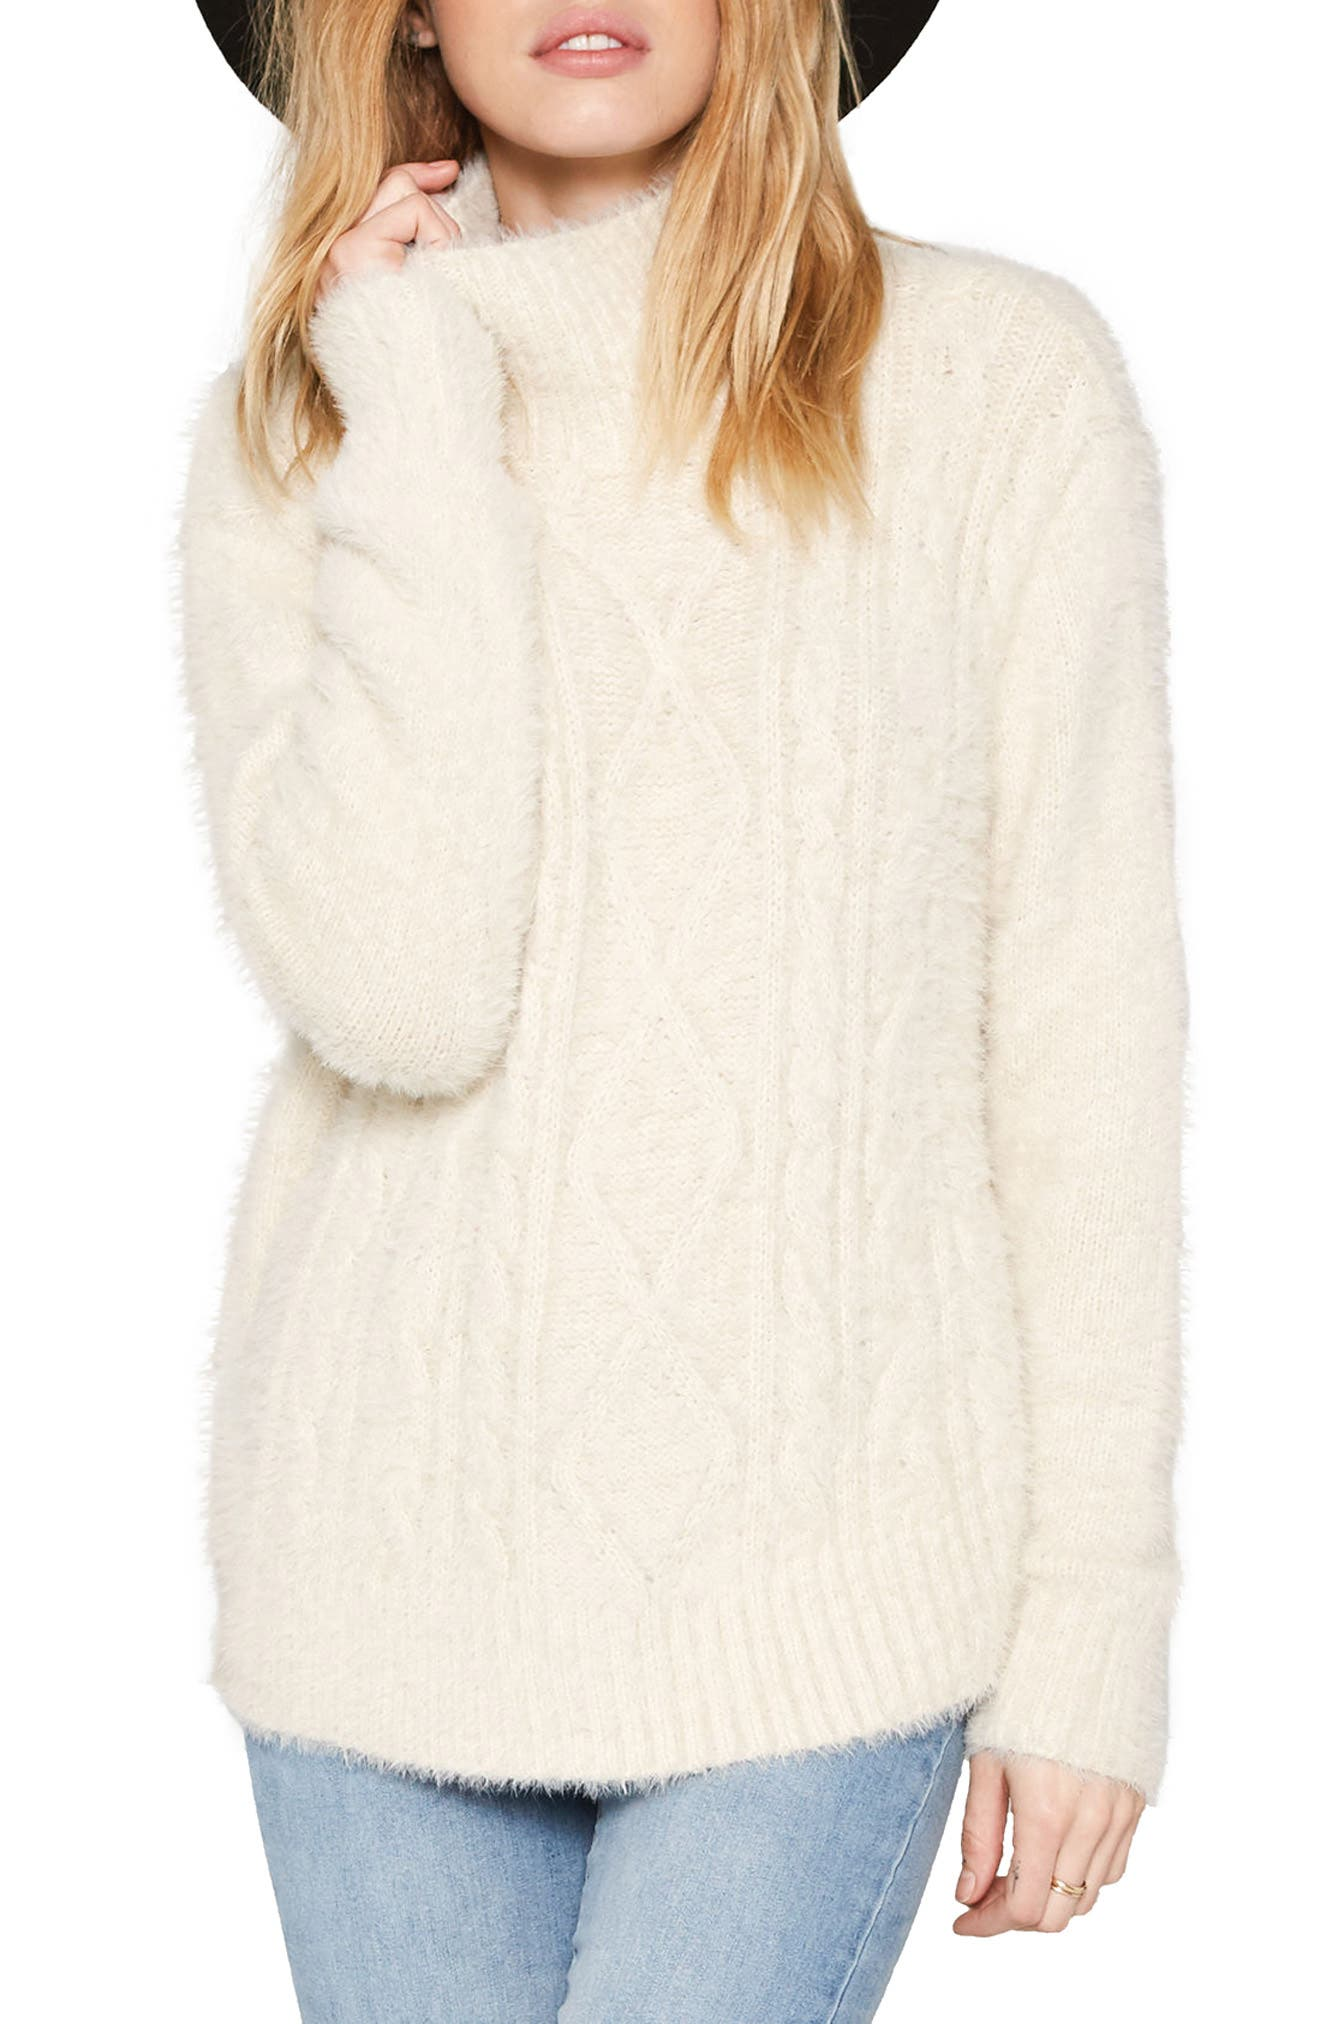 Cool Winds Cable Knit Sweater,                             Main thumbnail 2, color,